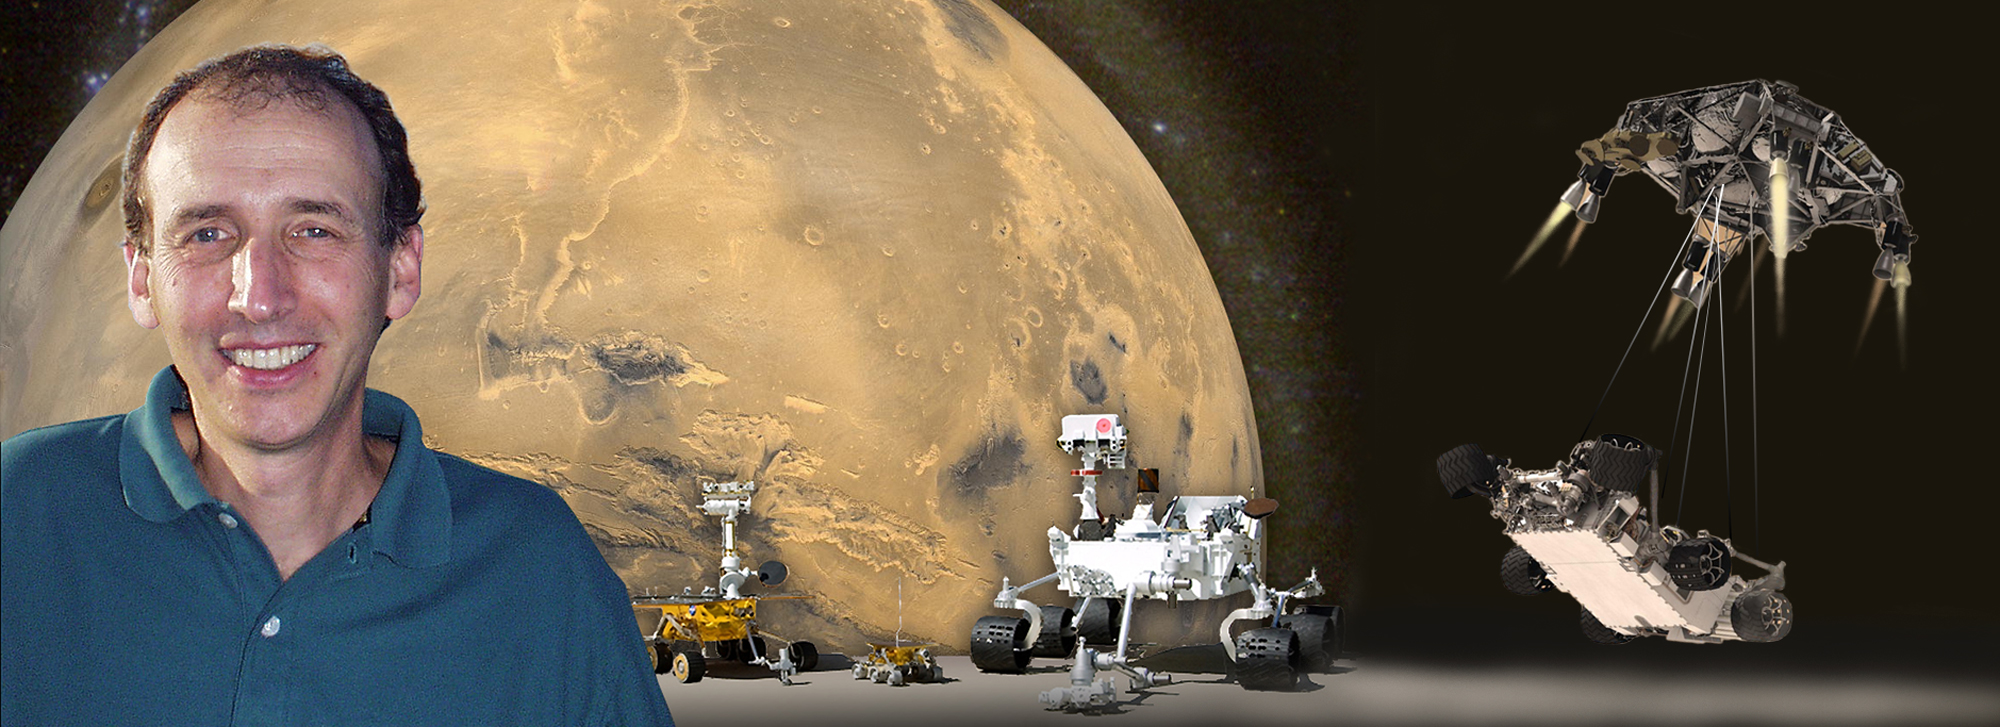 How to Select a Landing Site on Mars